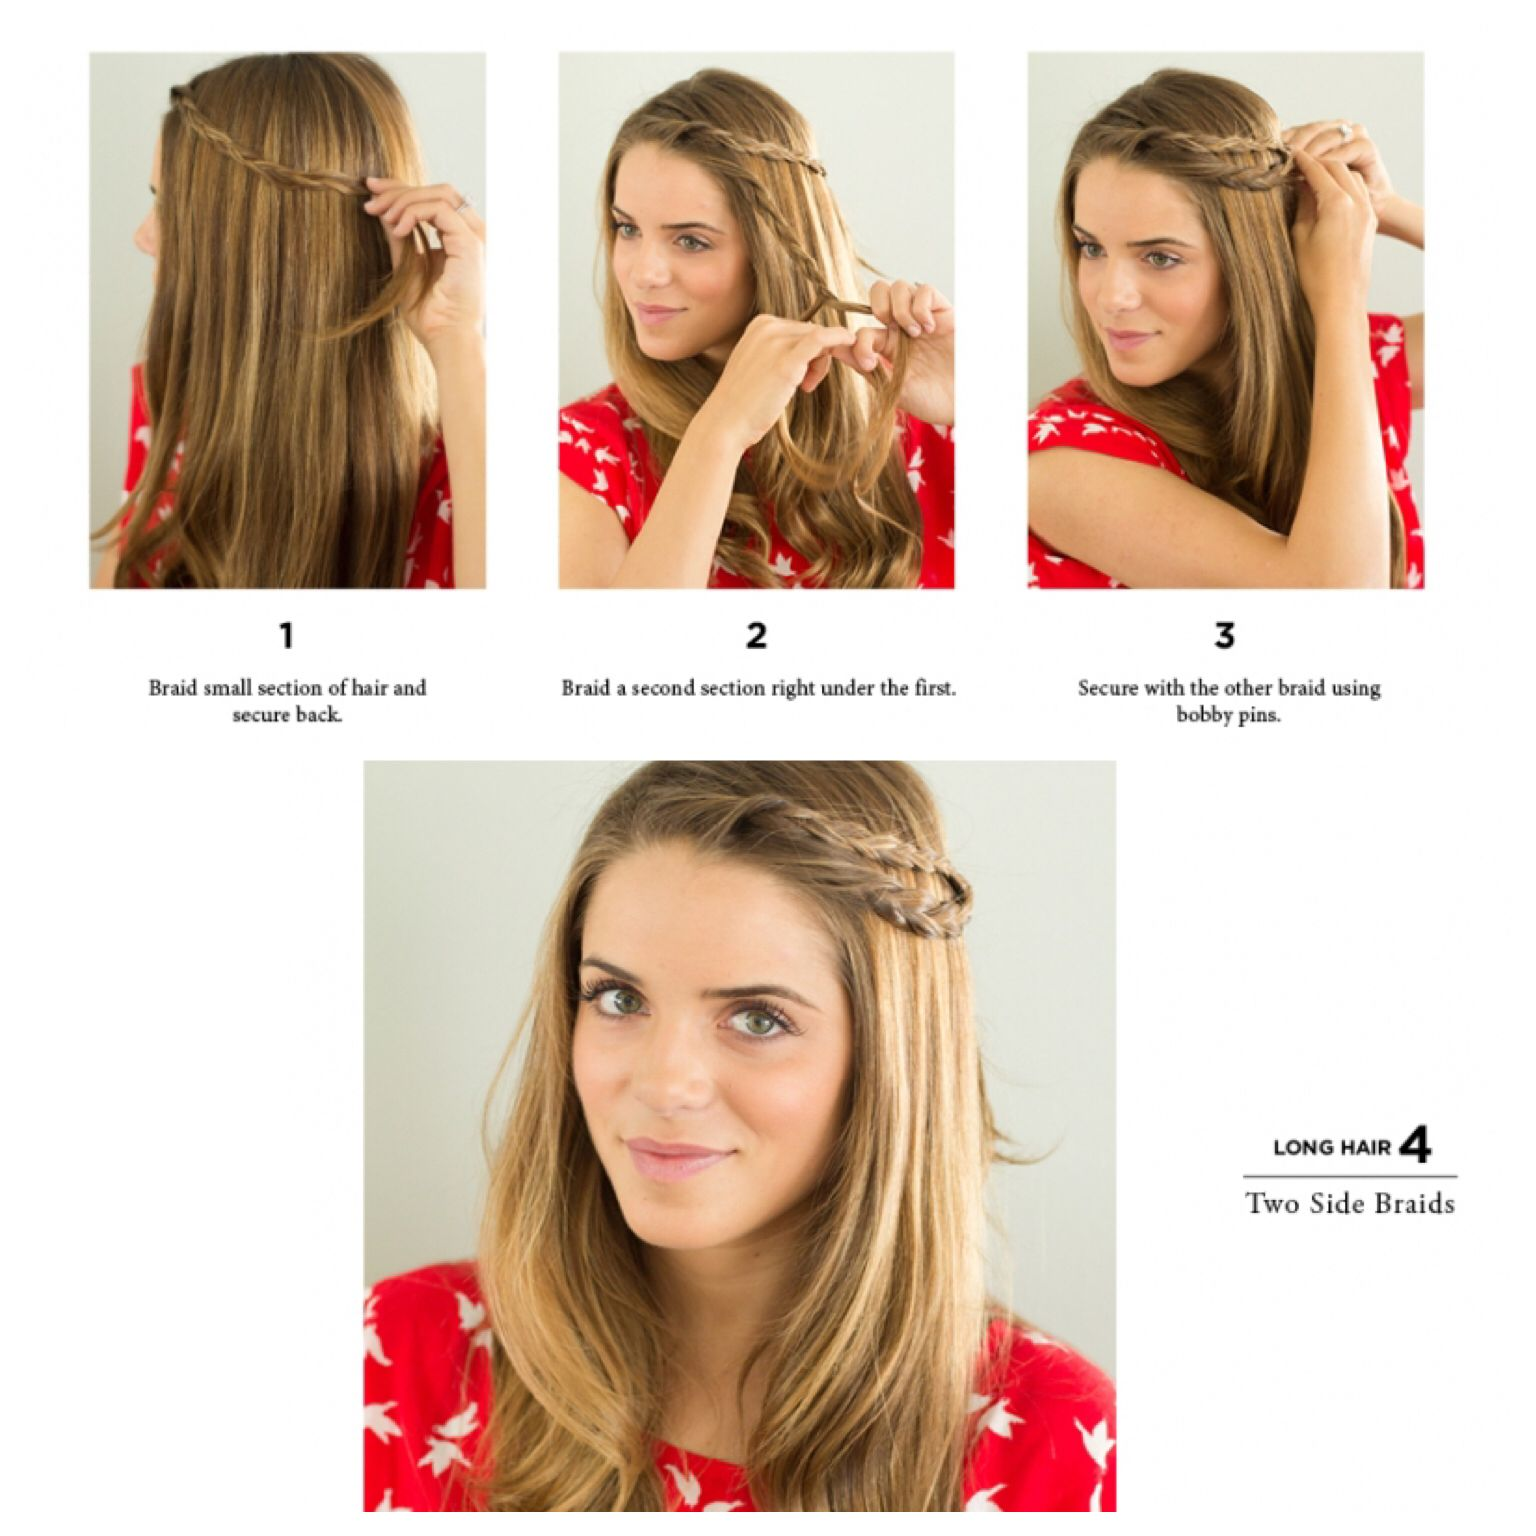 Hairstyle for summer simple and easy 2 side braids Follow ...